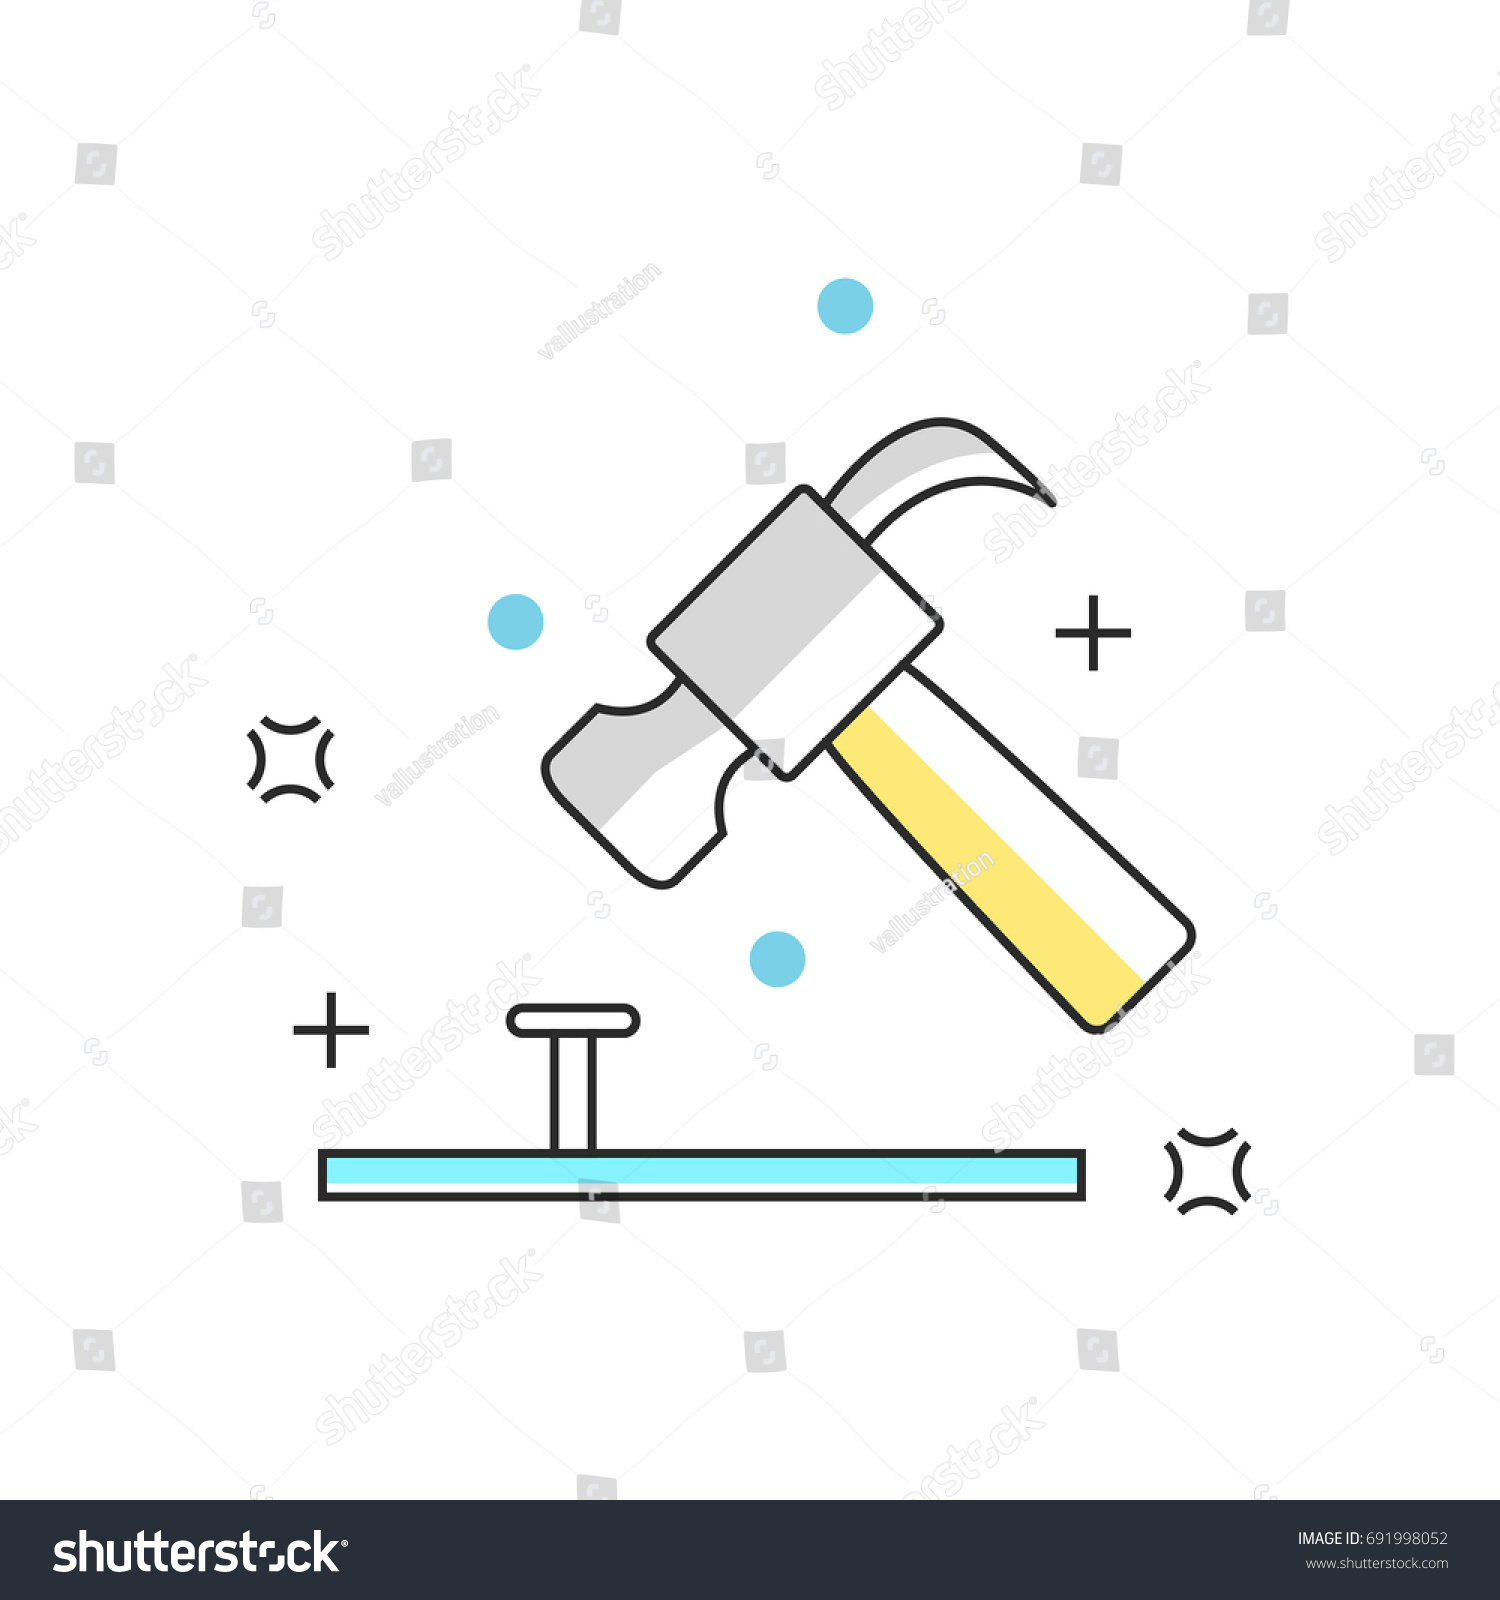 hight resolution of hammer and nail construction engineering architecture or interior design line icons vector illustration